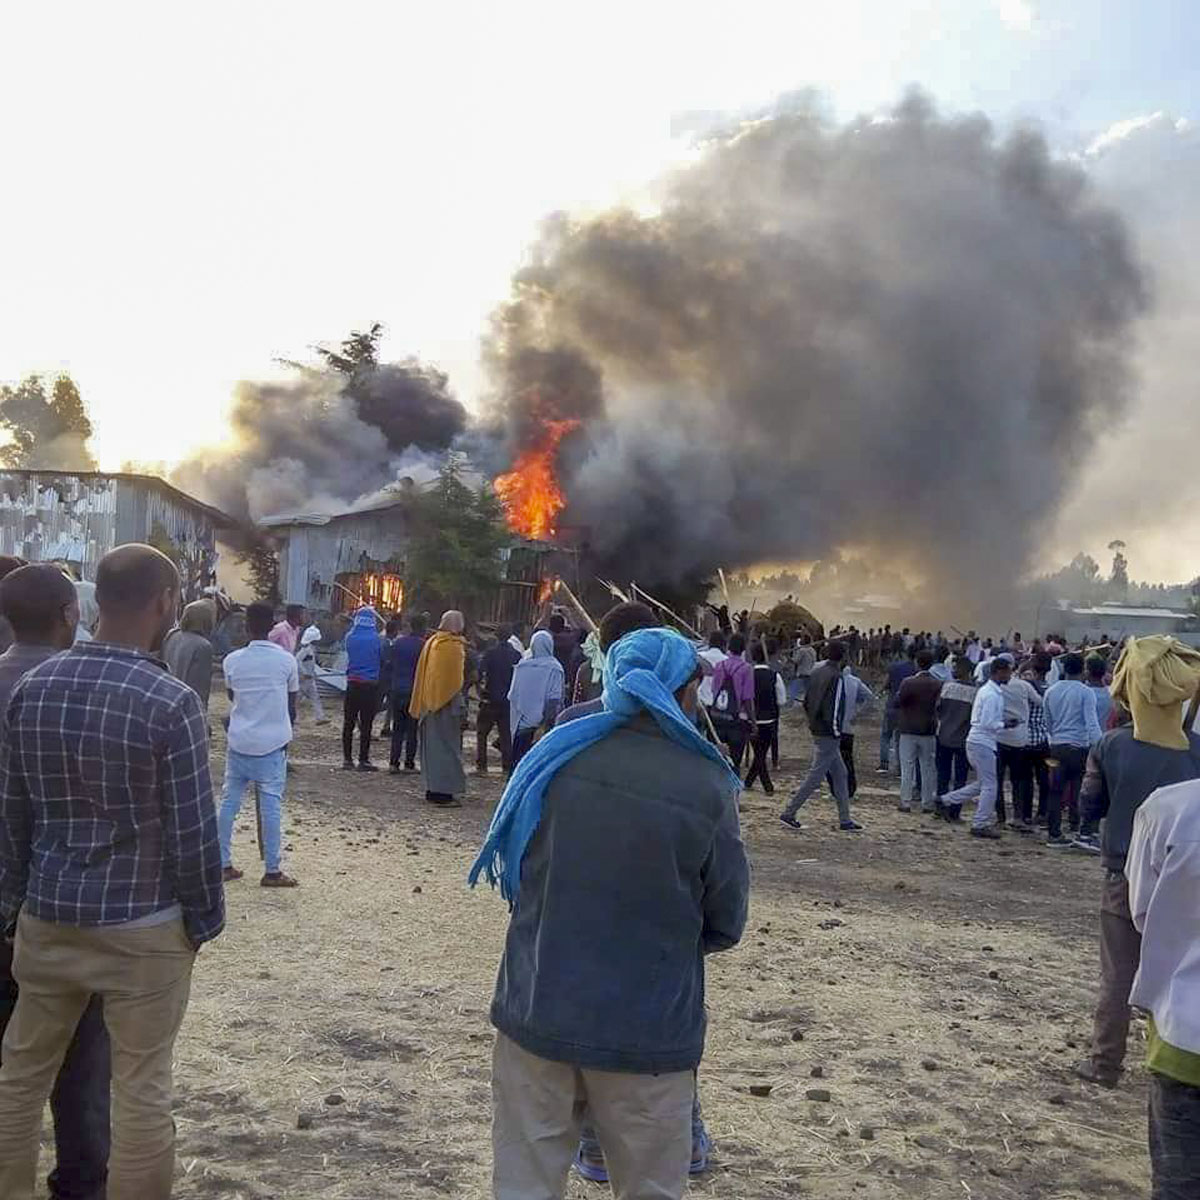 Christians in northern Ethiopia watch their church building burn after an attack by members of the Ethiopian Orthodox Church